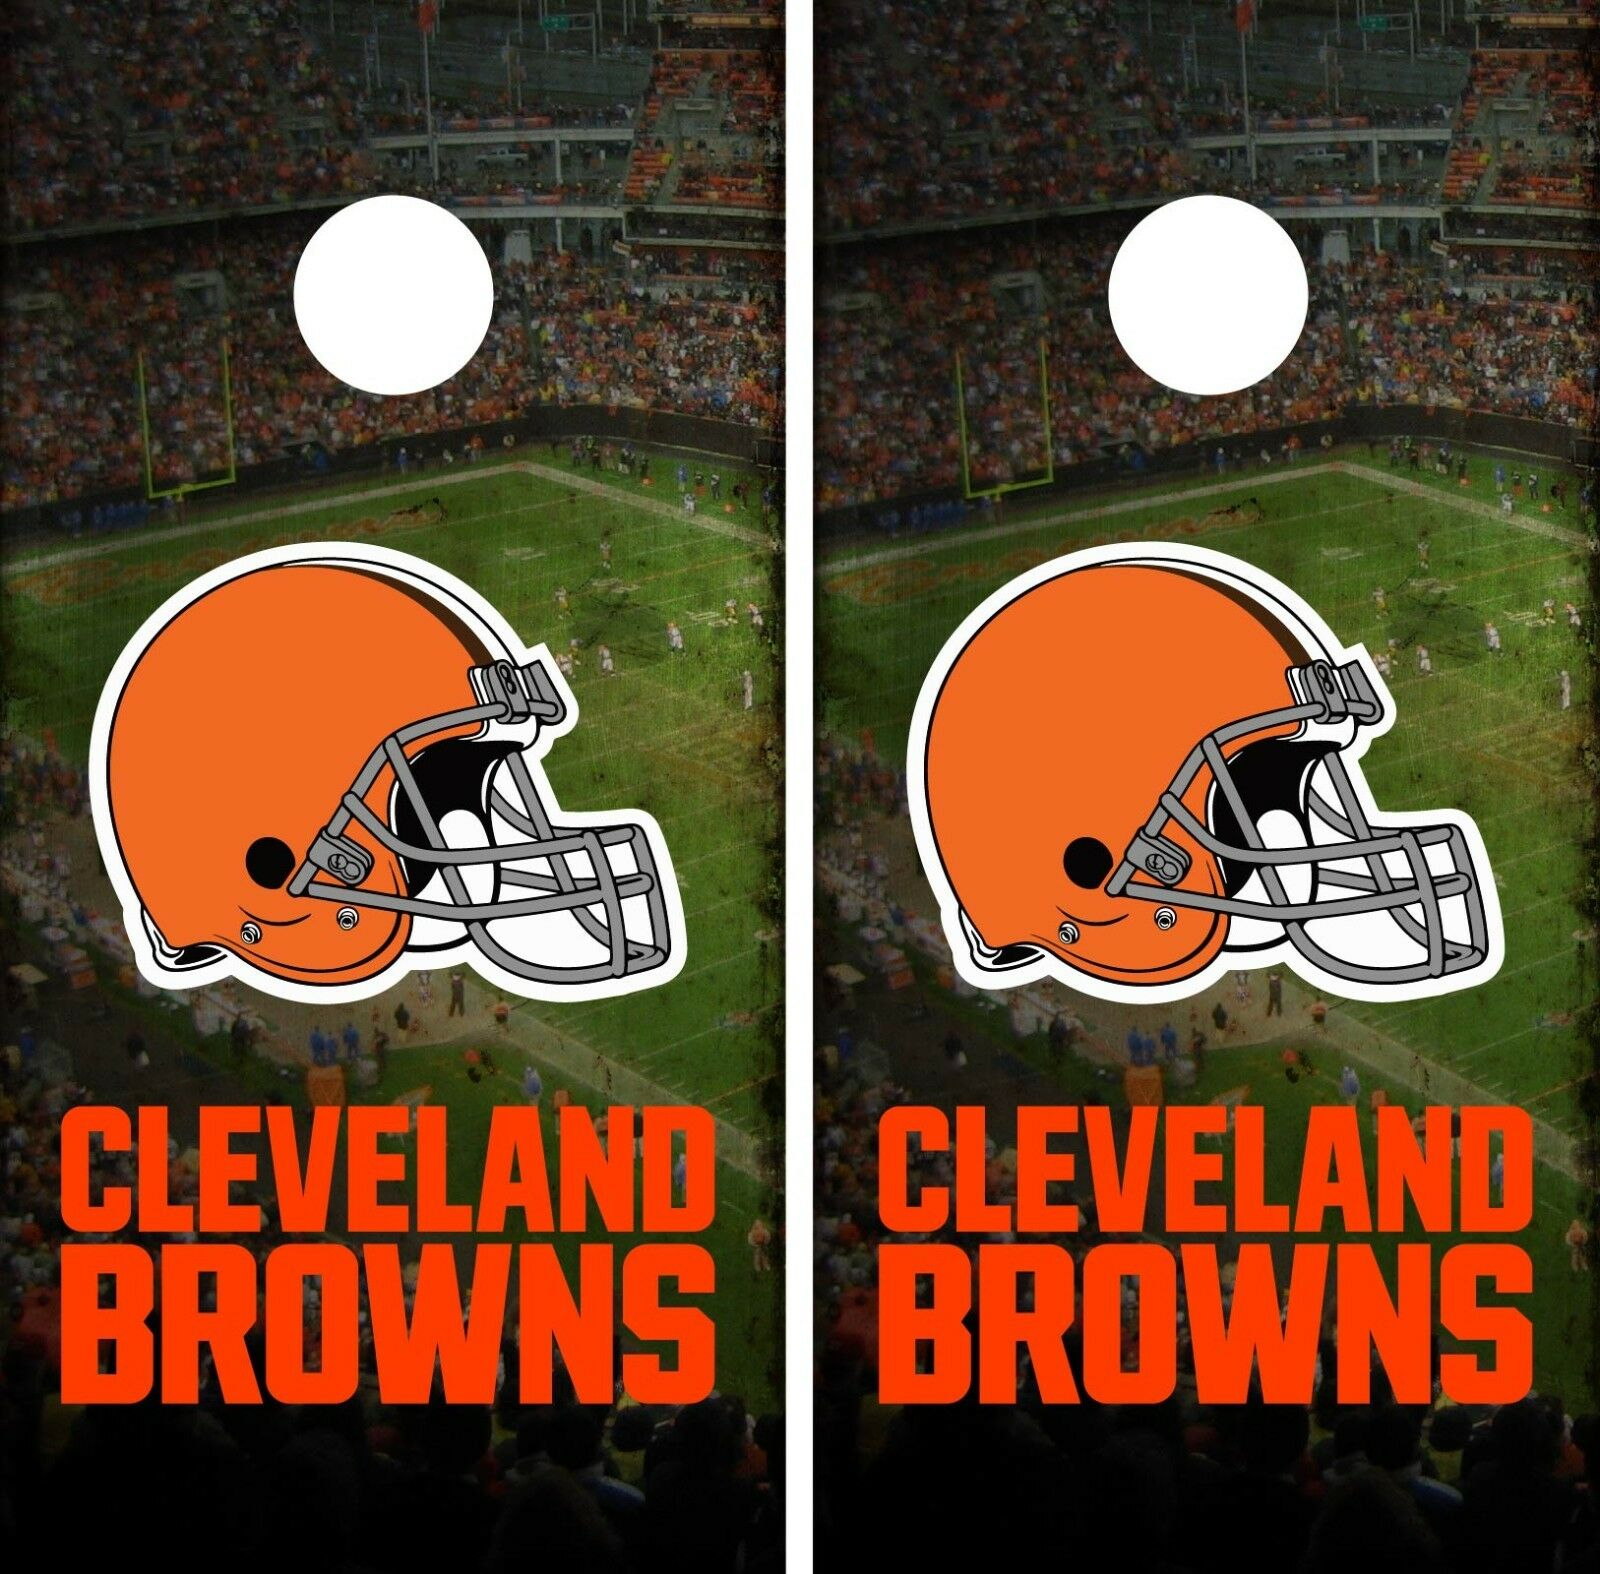 Cleveland Browns Stadium Cornhole Wrap  NFL Skin Game Board Set Vinyl Decal CO57  enjoy saving 30-50% off